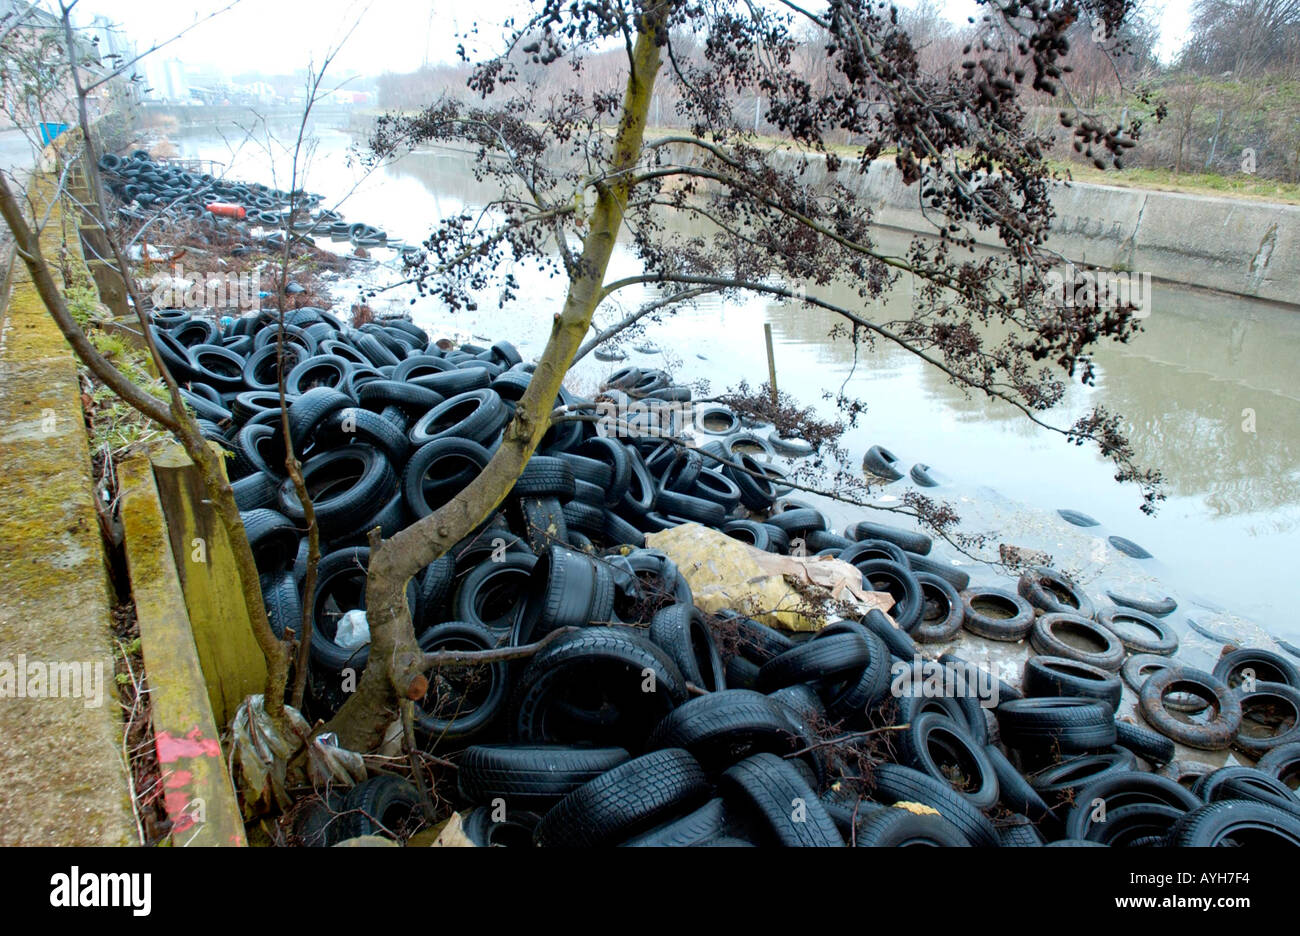 Discarded car tyres dumped in a London waterway. - Stock Image